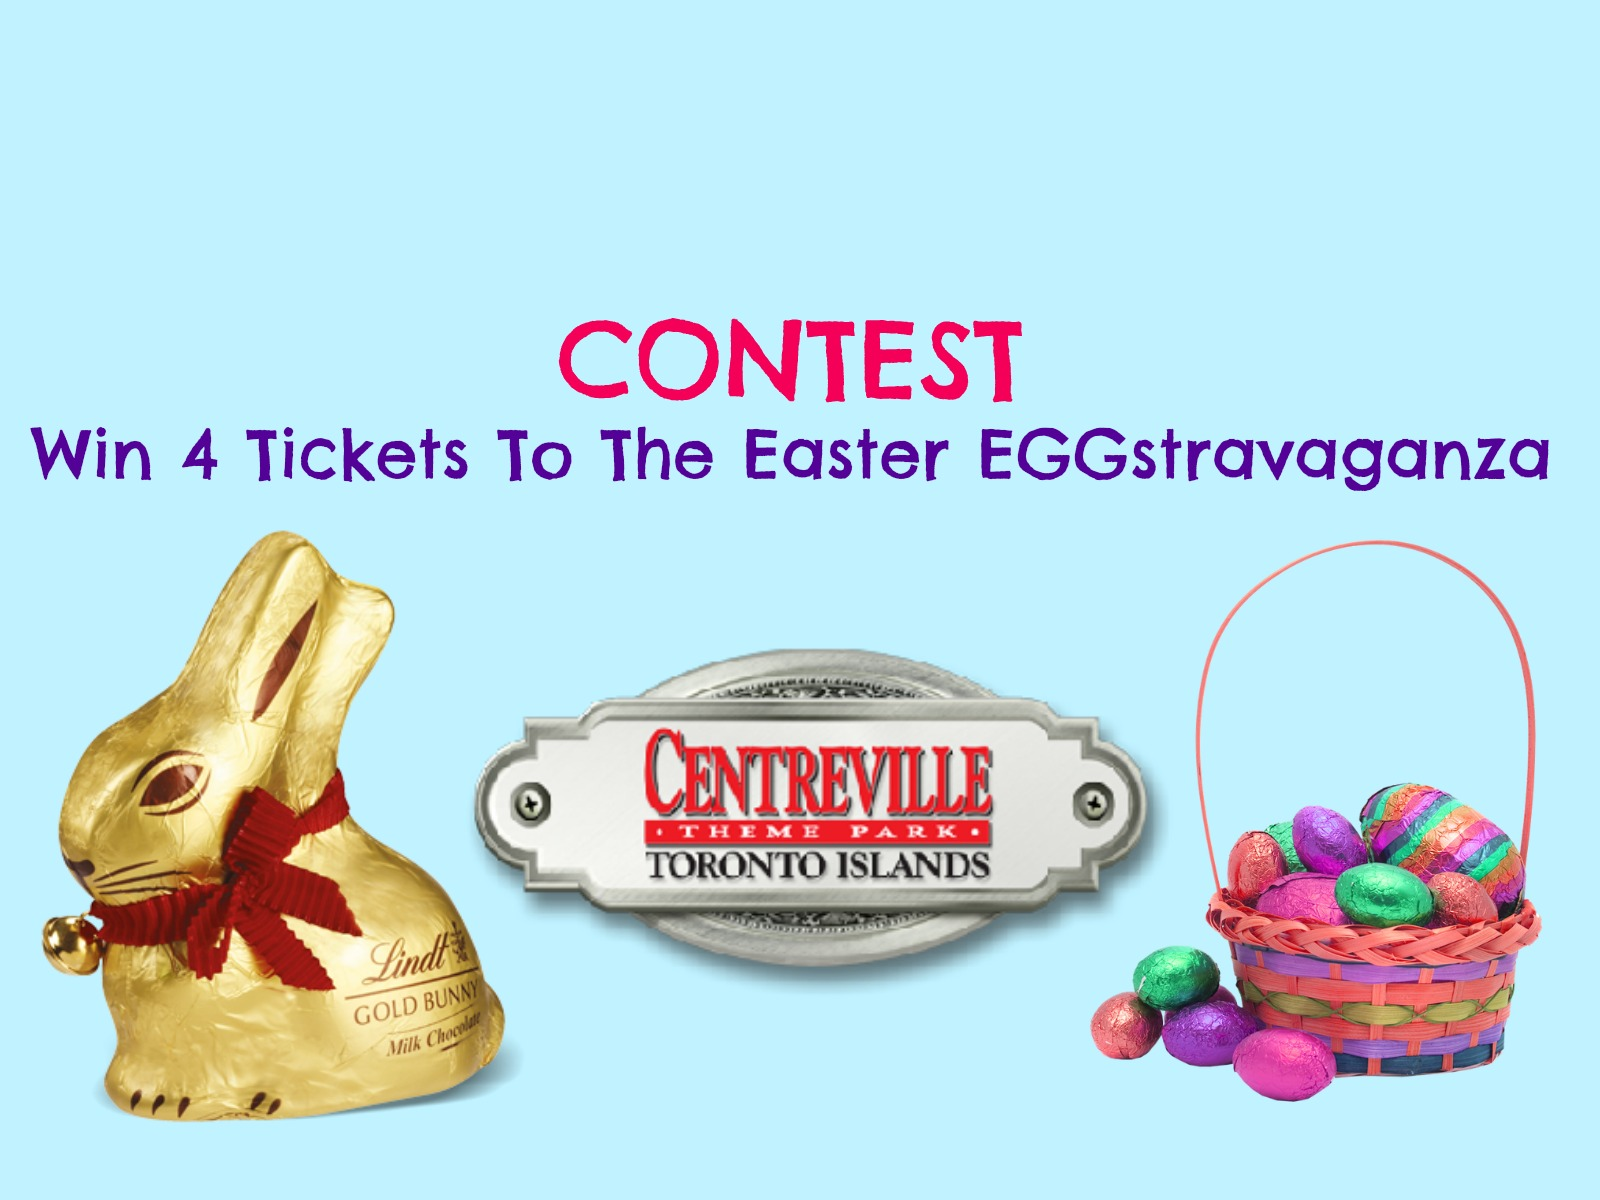 CONTEST: Win Tickets To The Easter Eggstravaganza